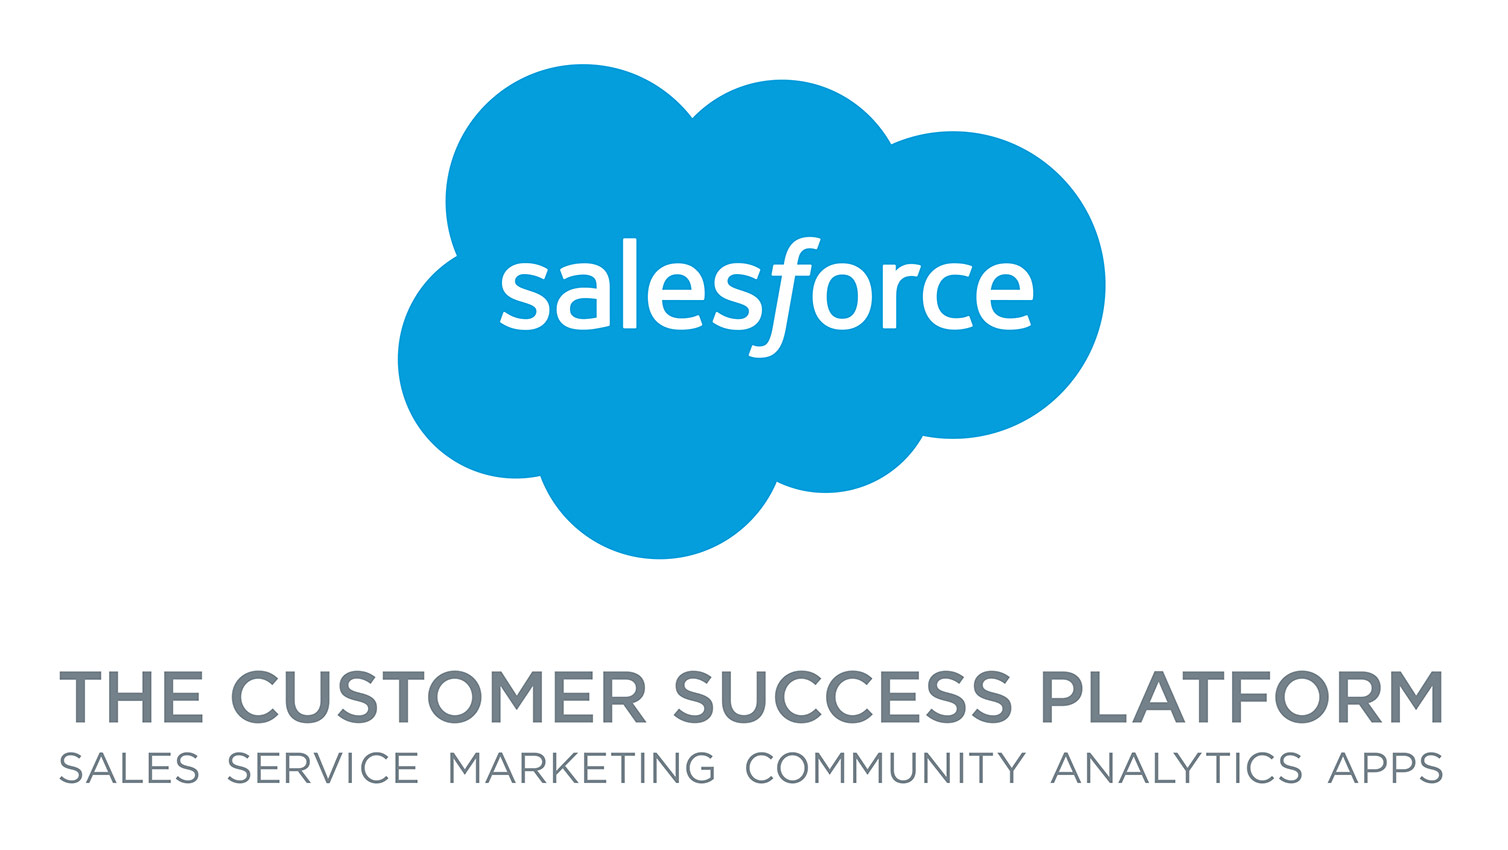 Salesforce for Marketers - It's More than Marketing